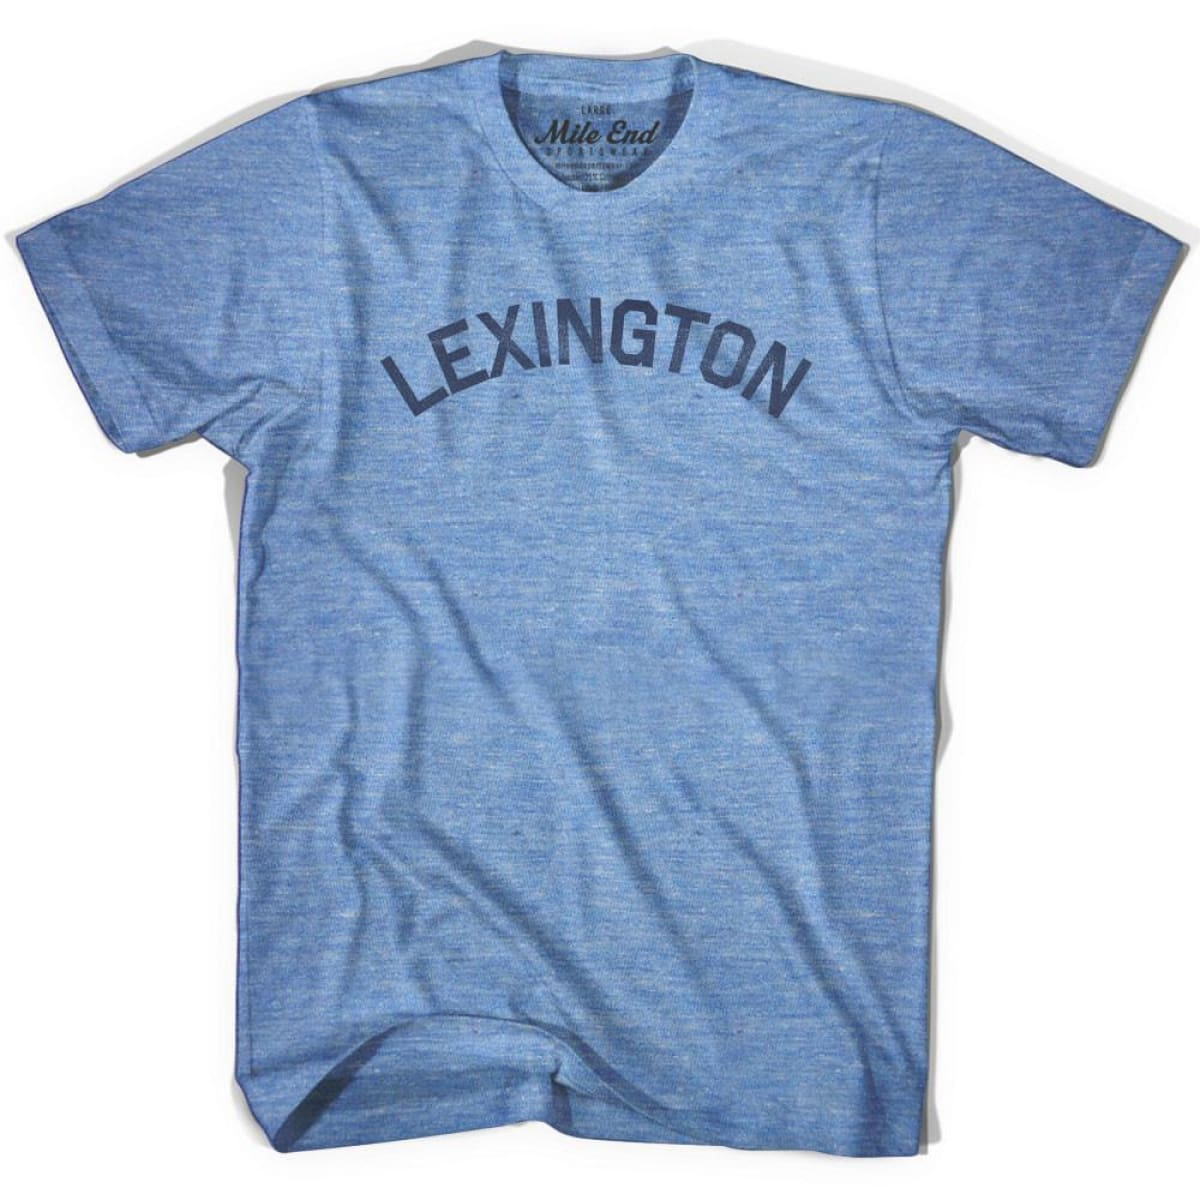 Lexington City T-shirt - Athletic Blue / Adult X-Small - Mile End City